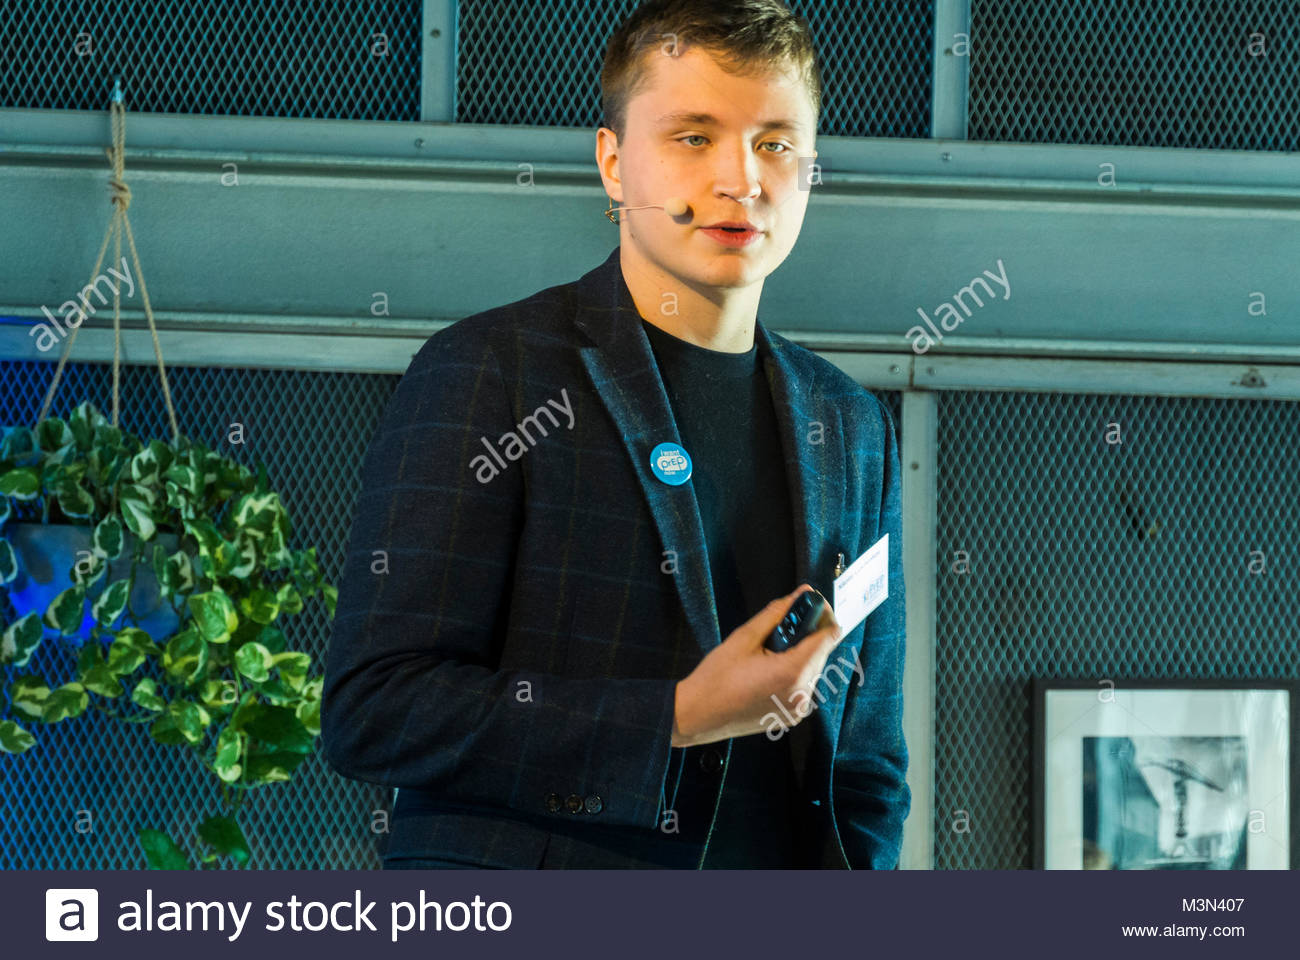 Amsterdam, Holland, PrEP in Europe Summit 2018, Nicolas Lunchenkov, Russian Doctor - Stock Image